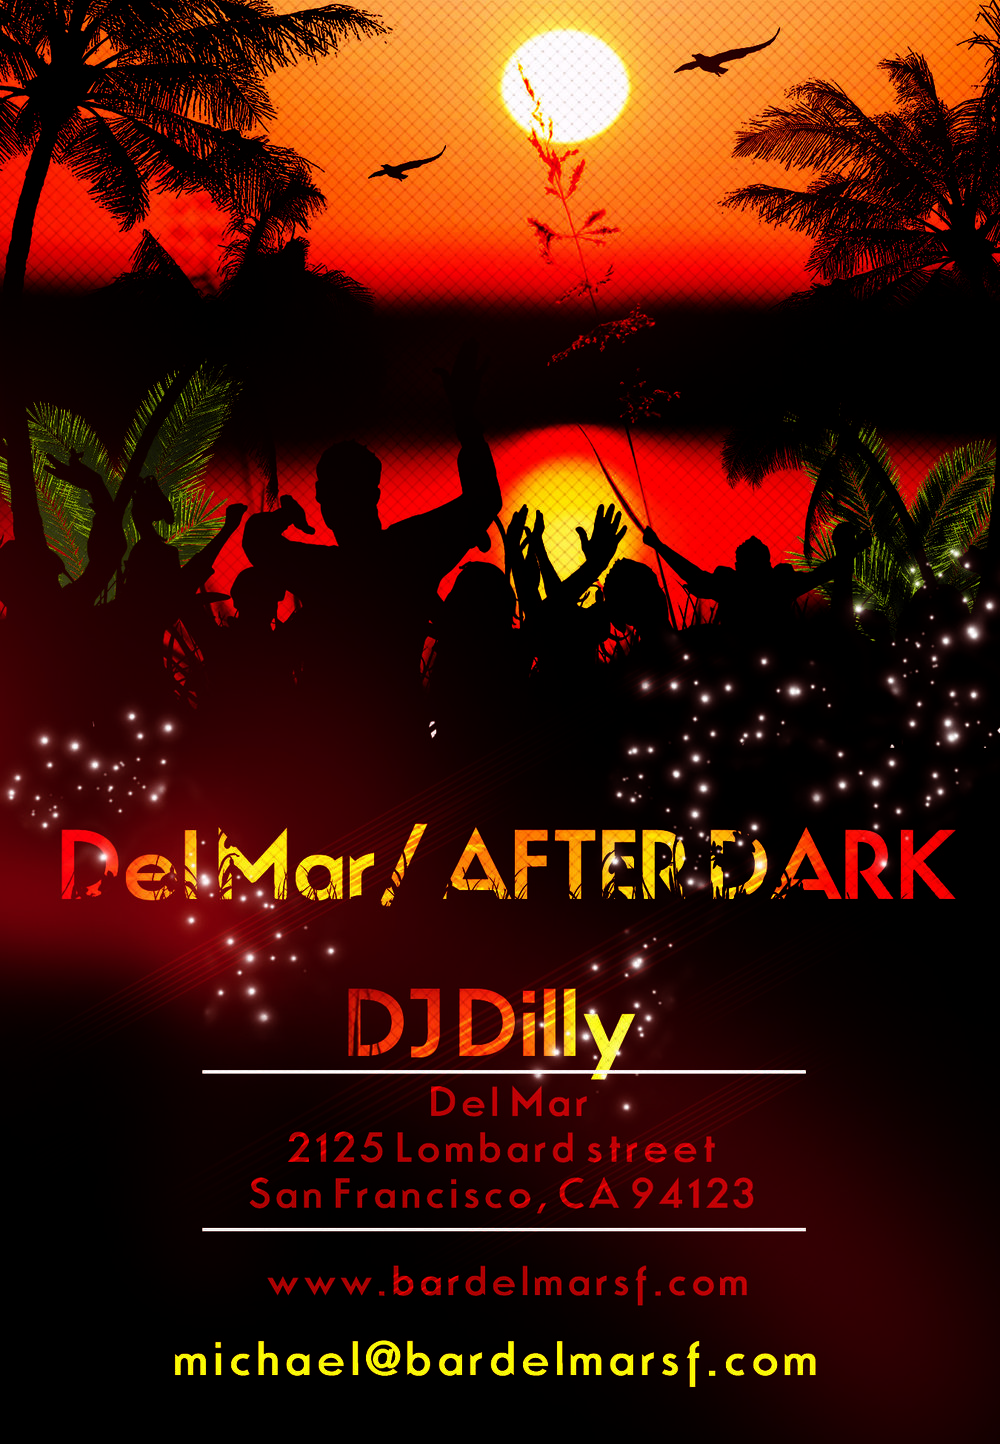 Del Mar After Dark flyer DJ Dilly.jpg